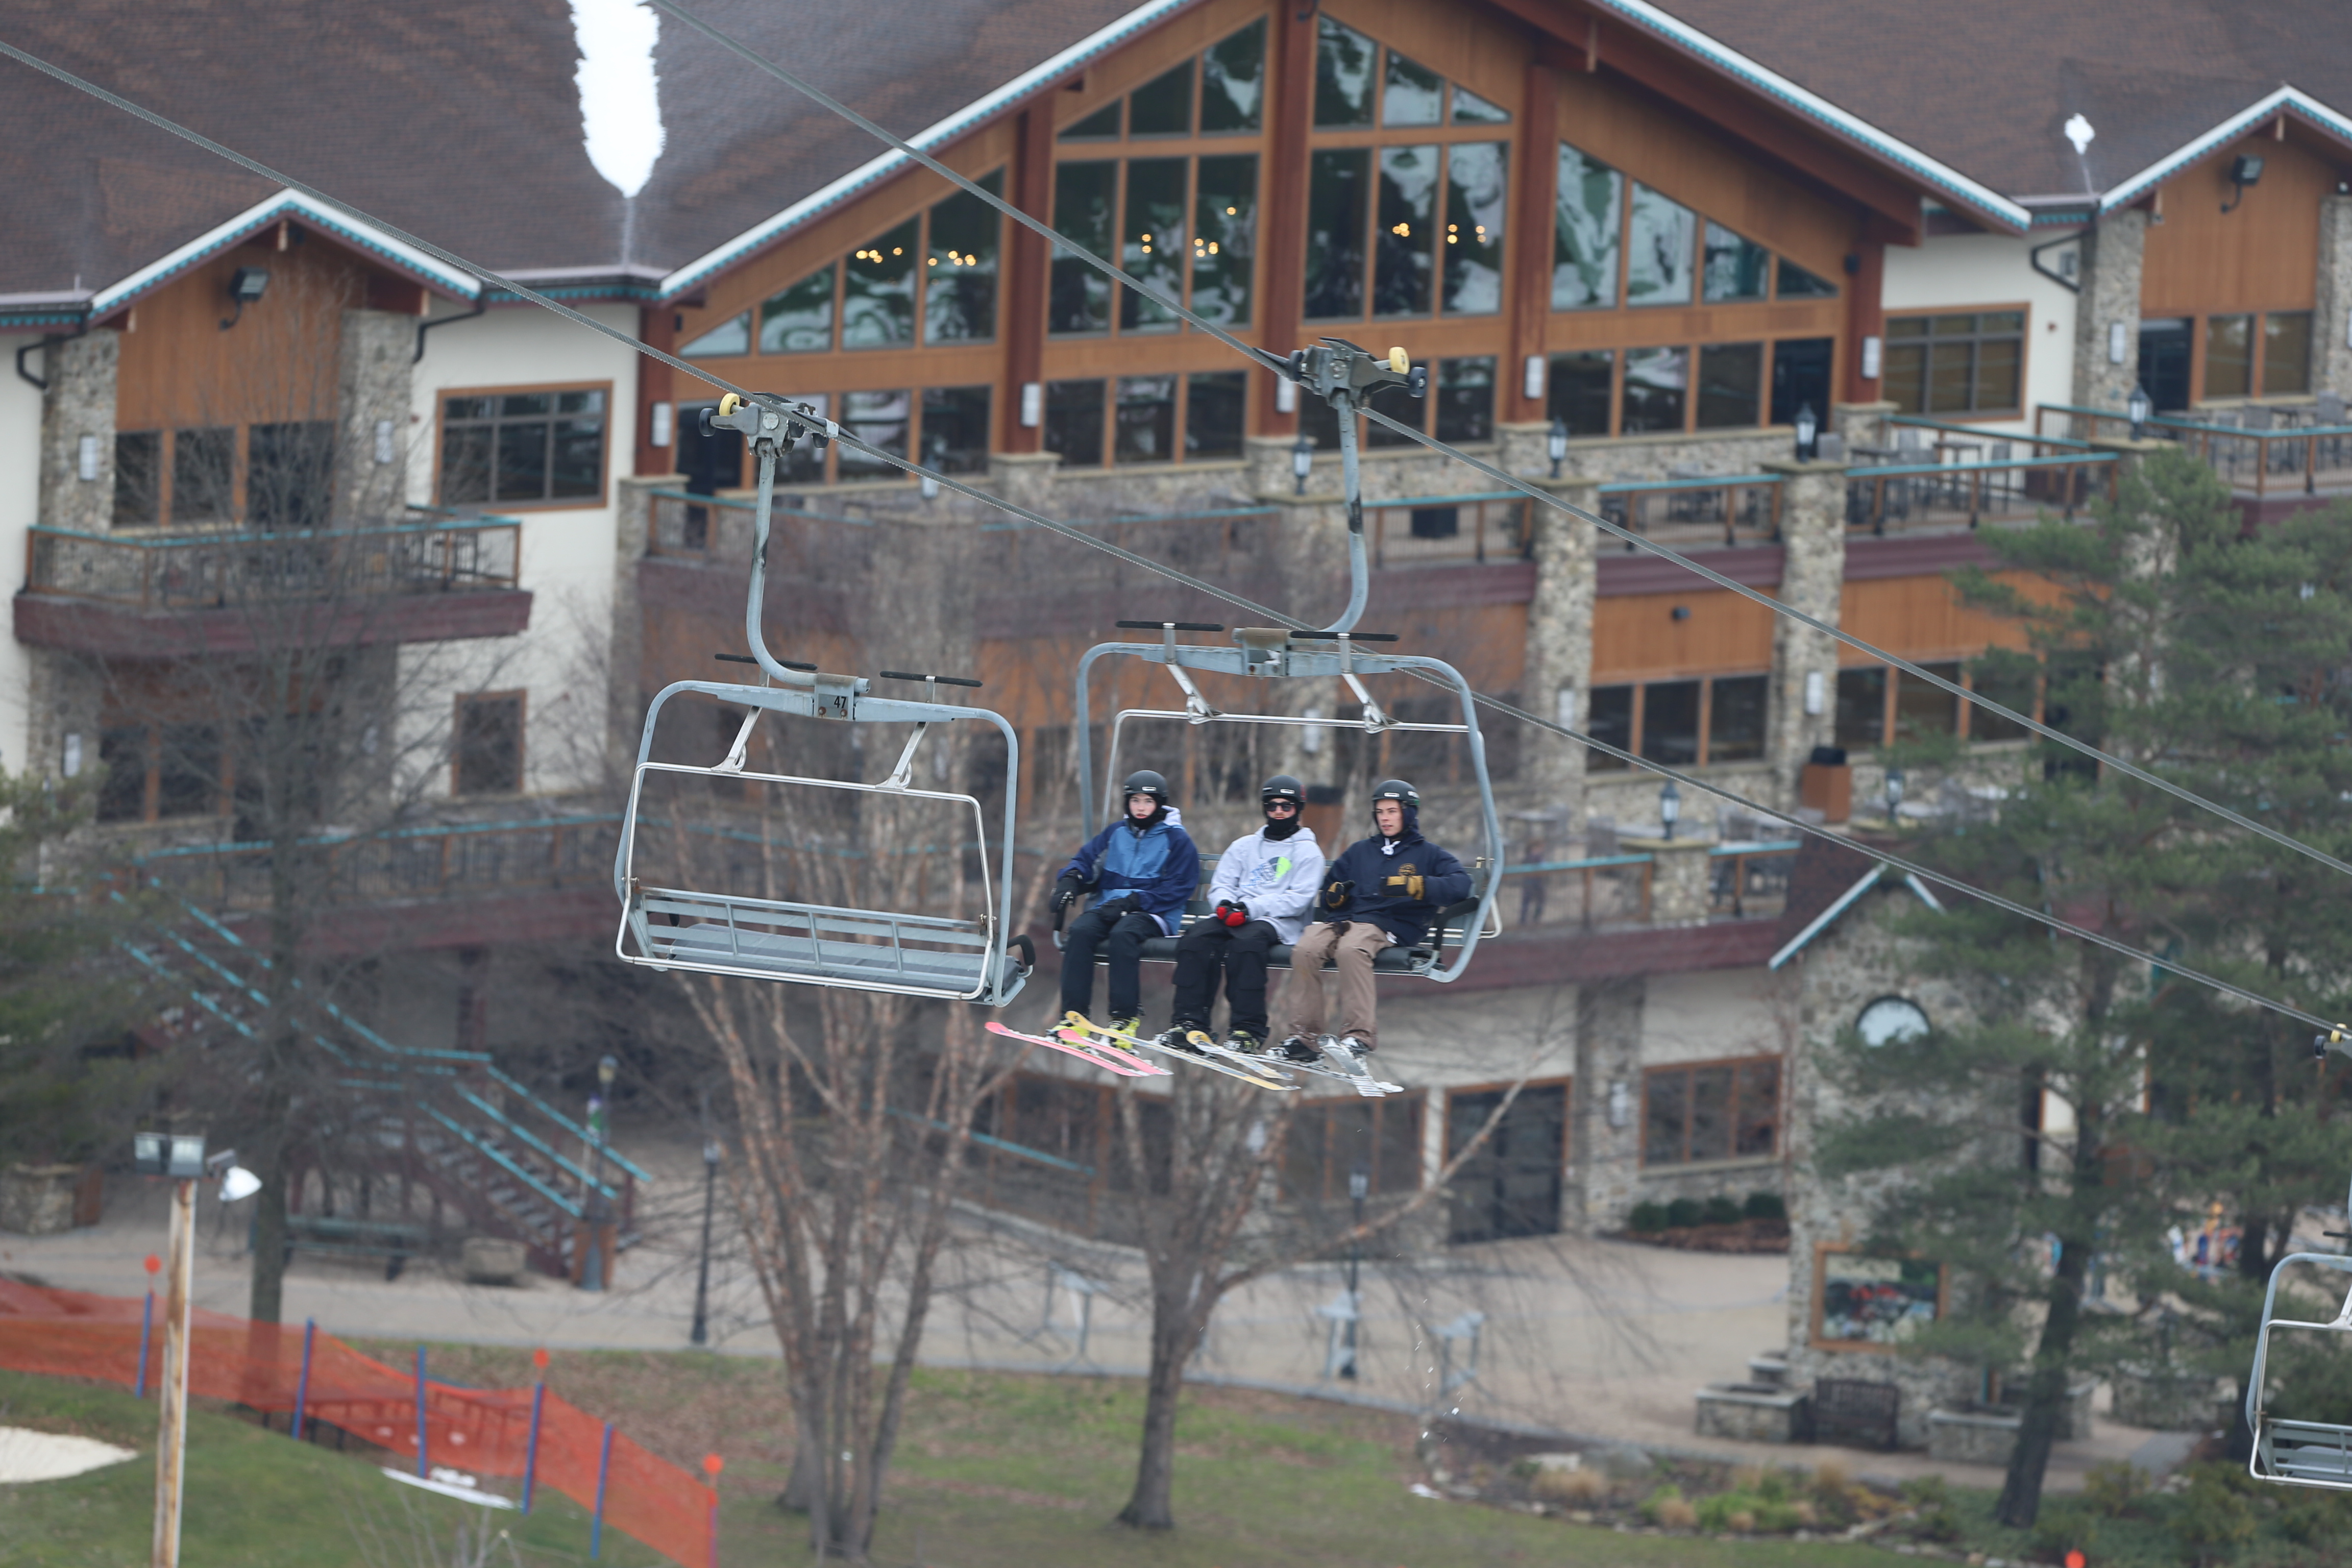 Skiers ride the chairlift up Mardi Gras as they hit the slopes on opening weekend at Holiday Valley in Ellicottville. (John Hickey/Buffalo News)